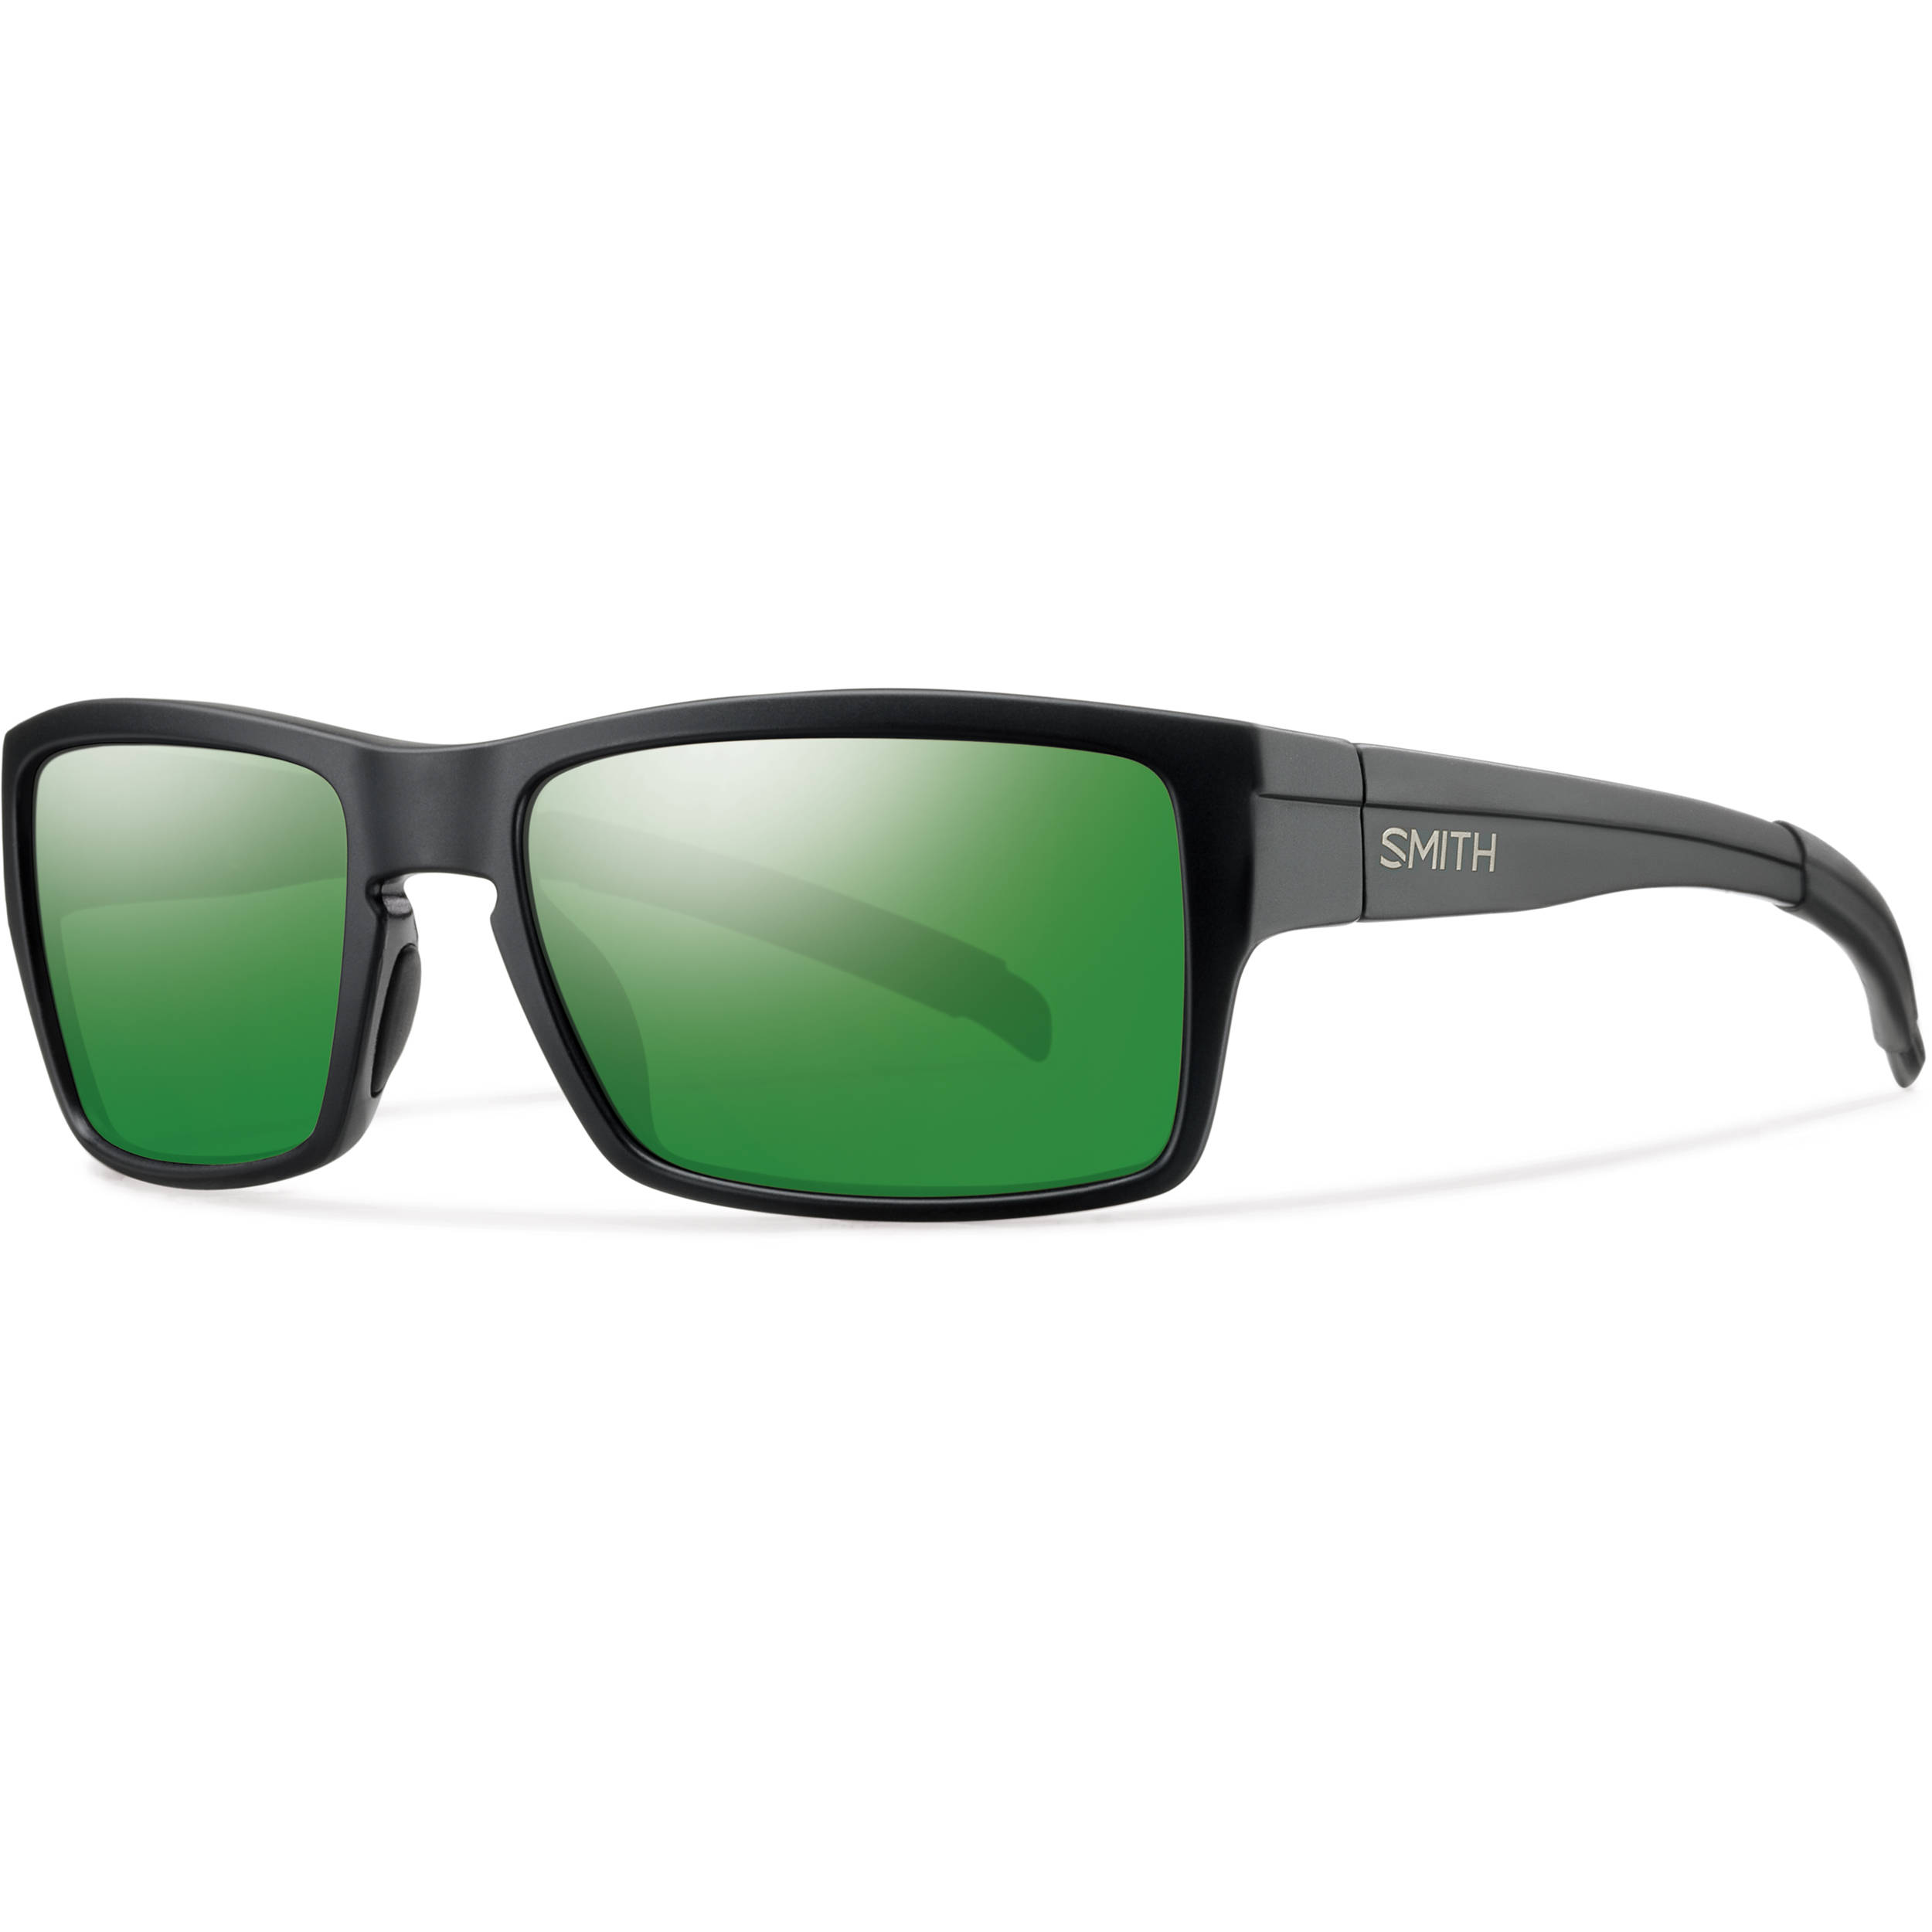 6928ae1f2a Smith Sunglasses Outlier Xl